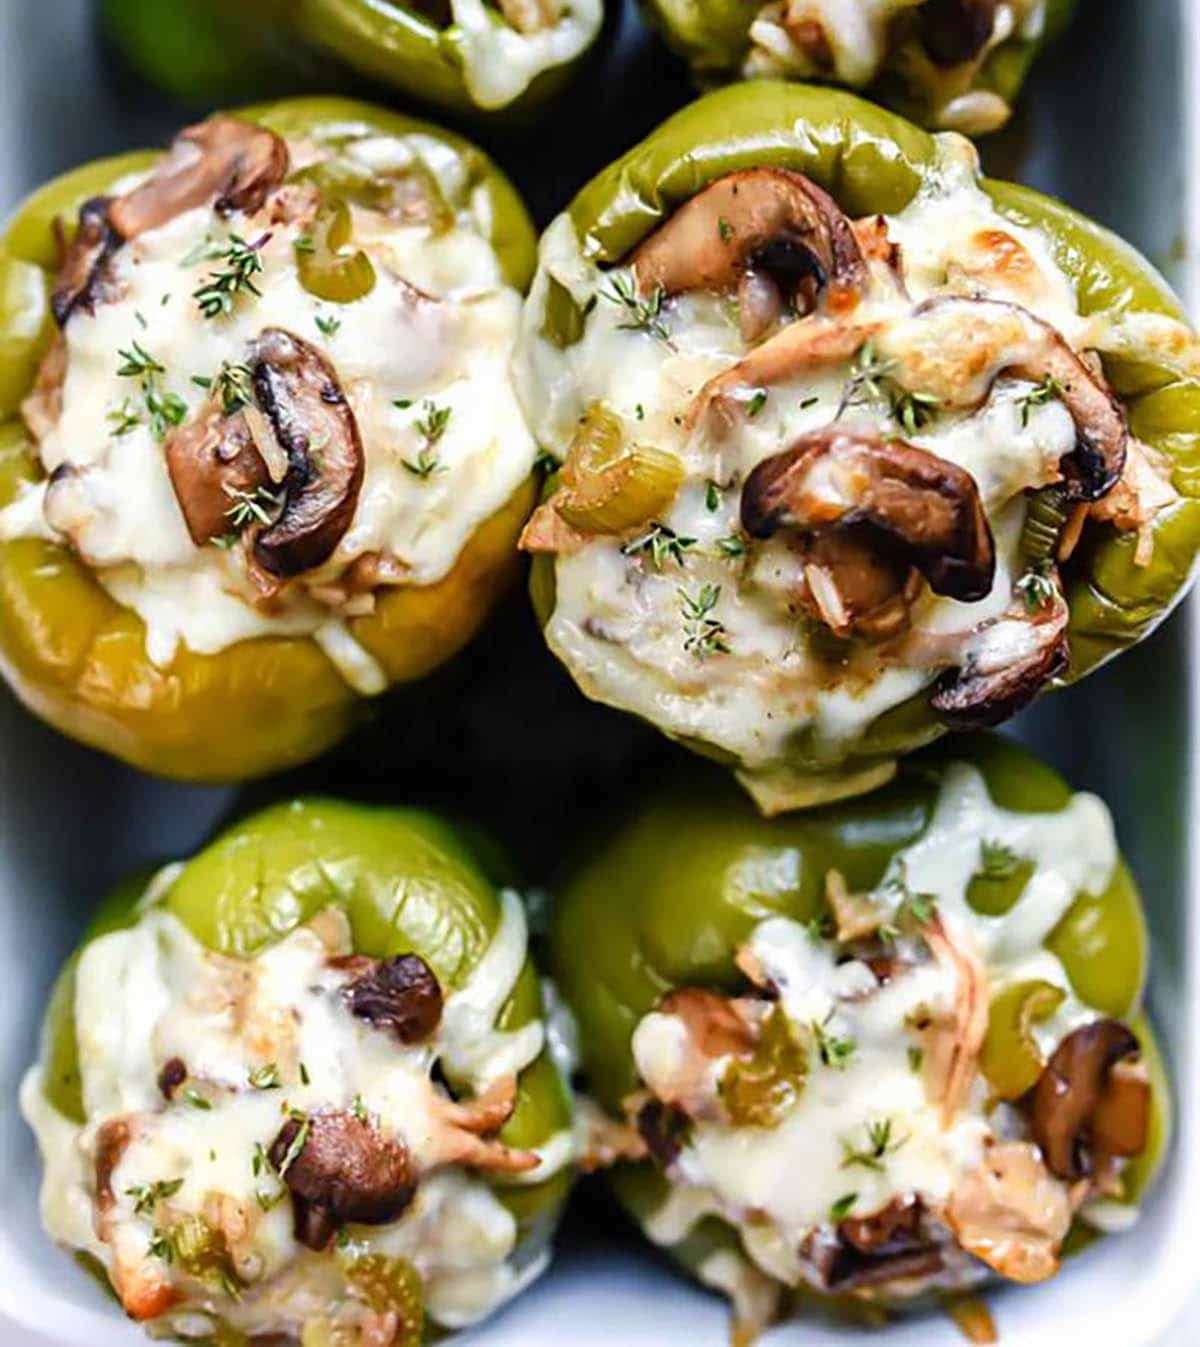 Chicken and Mushroom Stuffed Bell Peppers